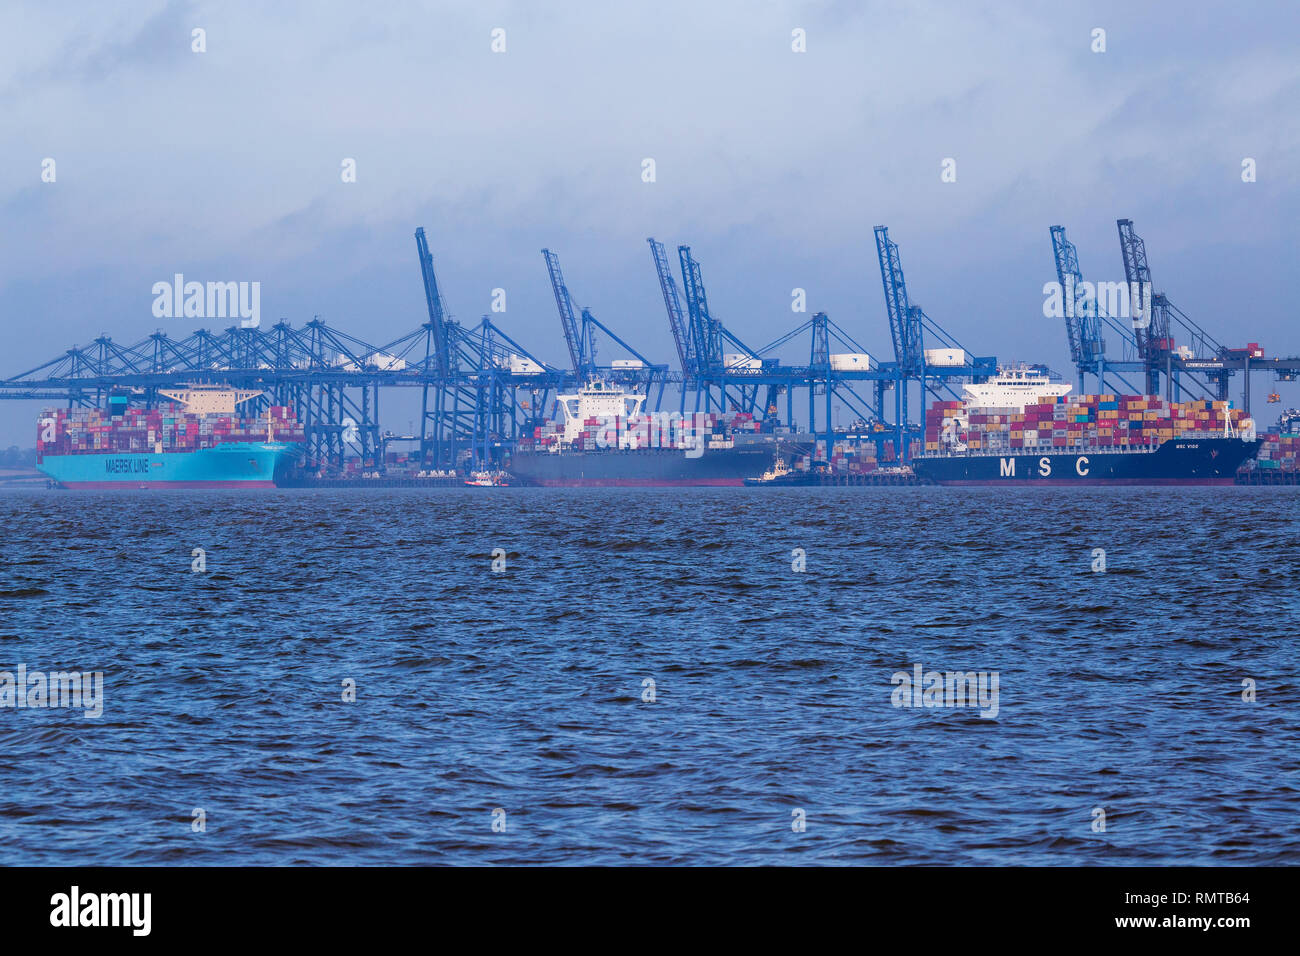 Container Ships Docked at Port of Felixstowe - Stock Image